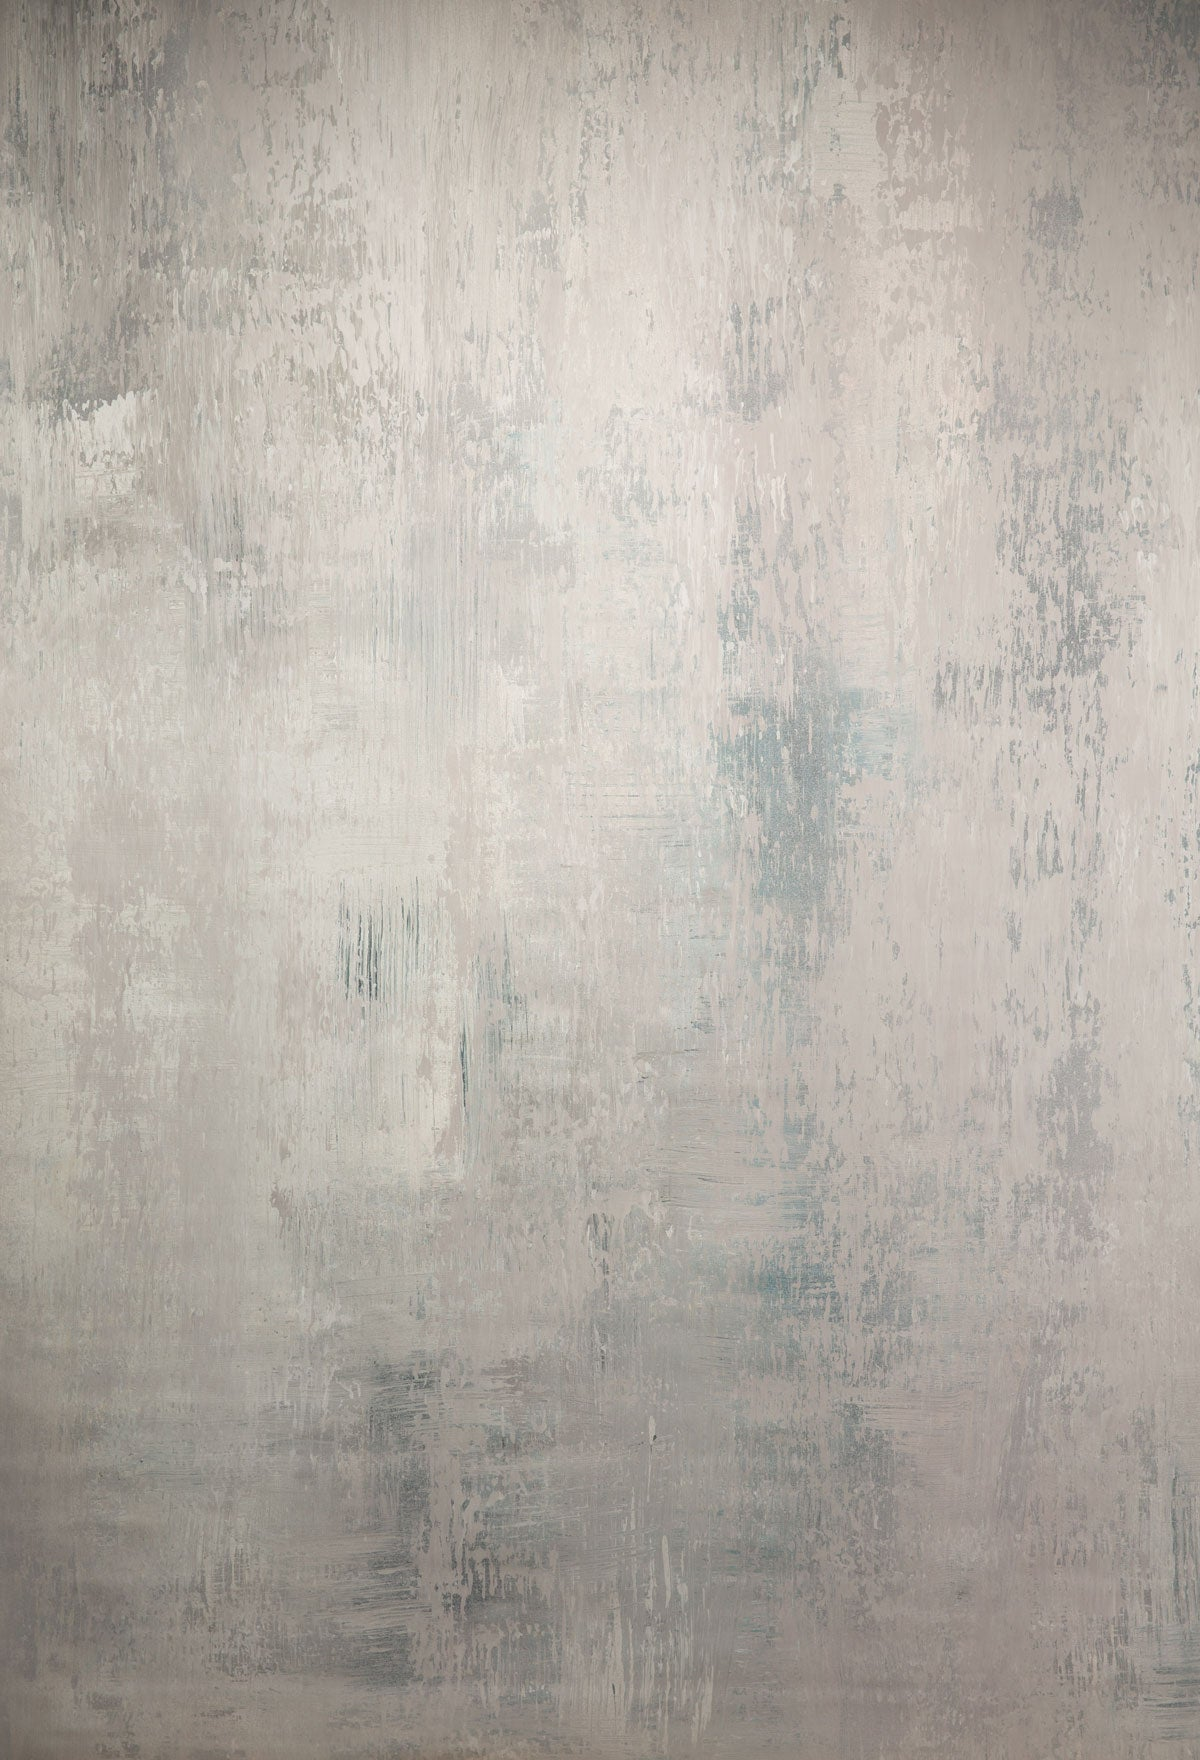 RTS-Clotstudio Abstract Grey with Light Beige Textured Hand Painted Canvas Backdrop #clot 51